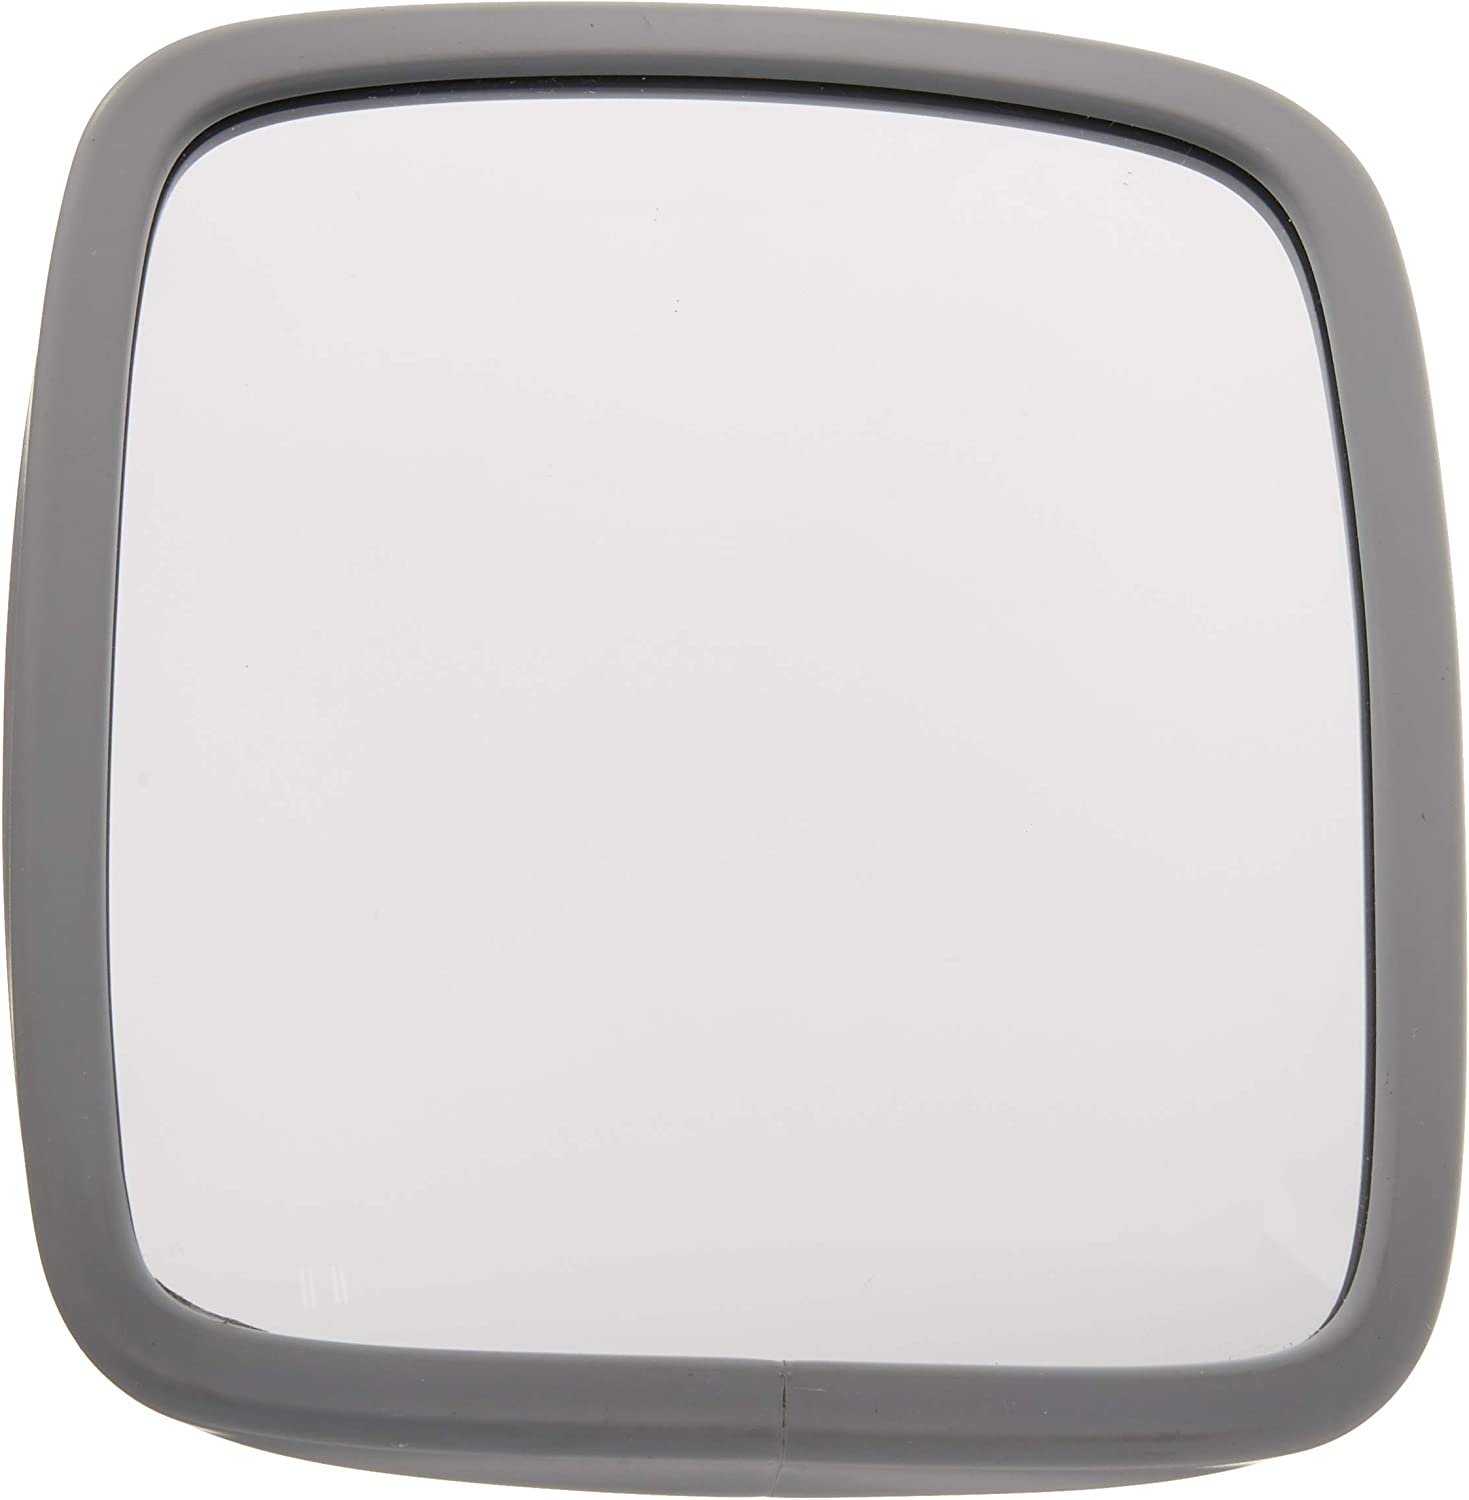 Velvac 704091 6.5x10 Side Mount Mirror Head Stainless Steel with Flat Glass